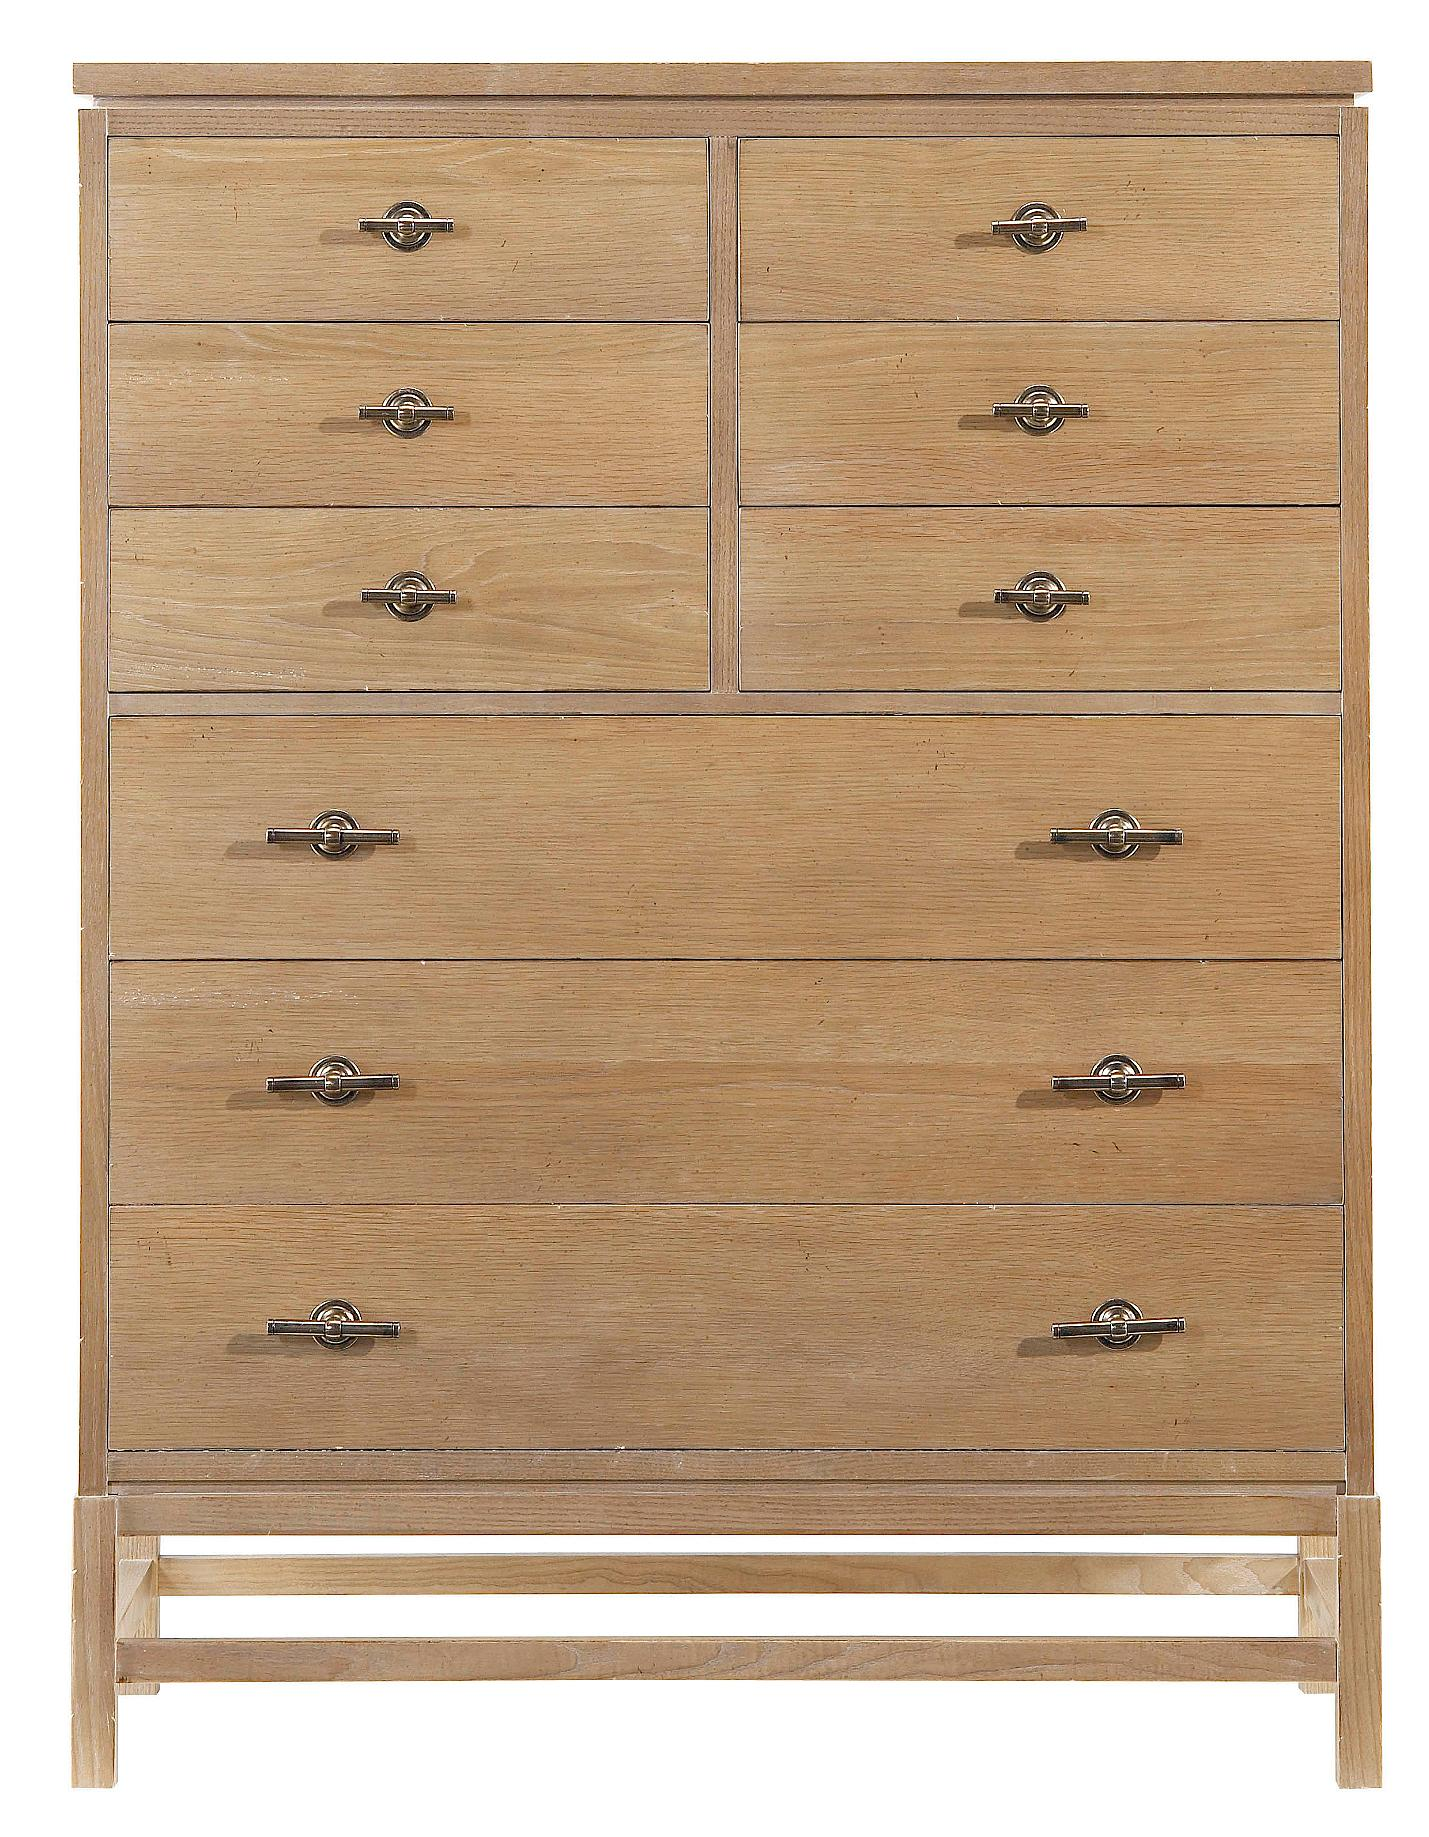 Stanley Furniture Coastal Living Resort Tranquility Isle Drawer Chest - Item Number: 062-63-13